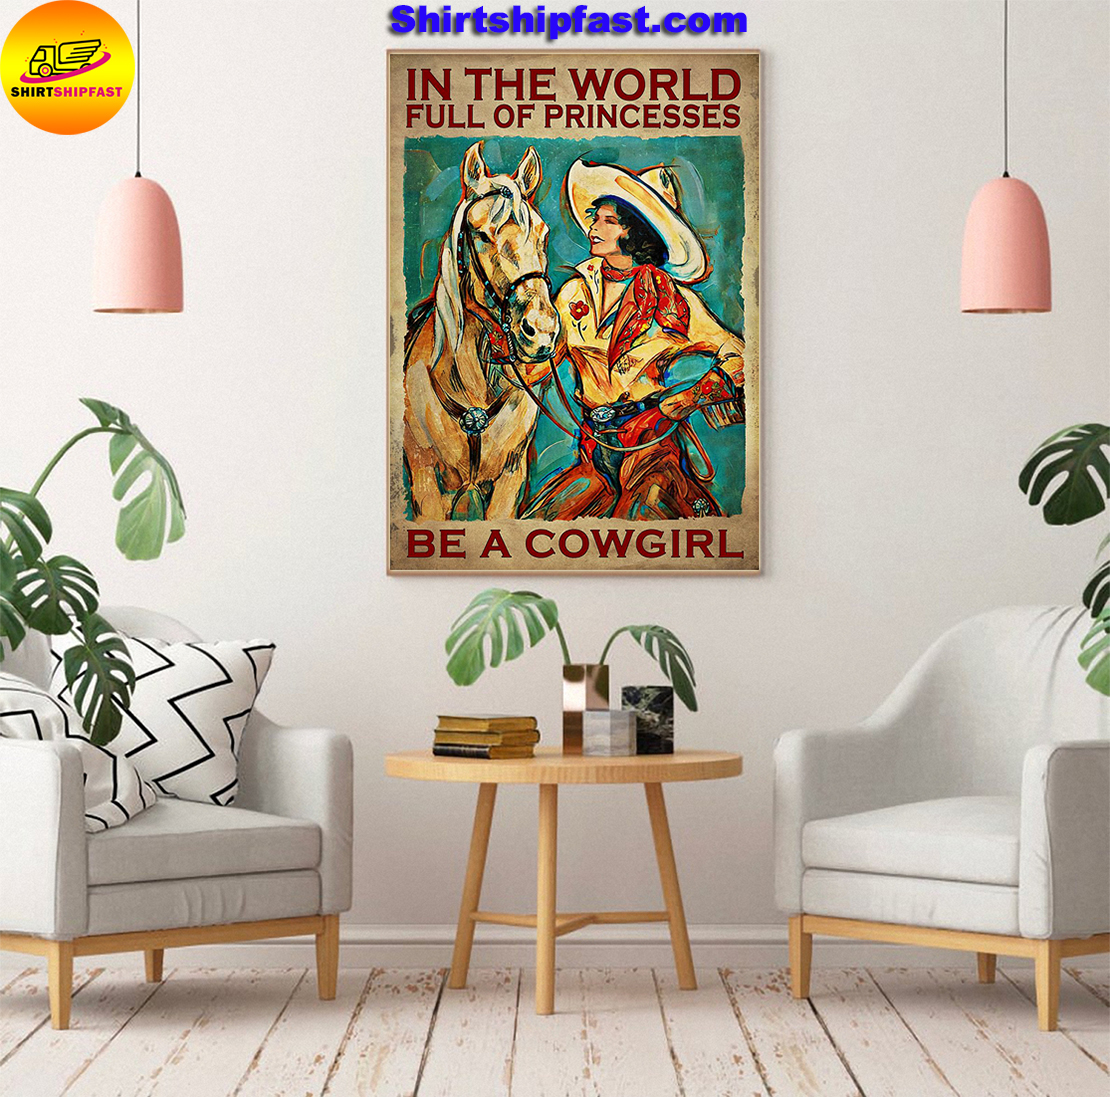 In the world full of princesses be a cowgirl poster - Picture 2